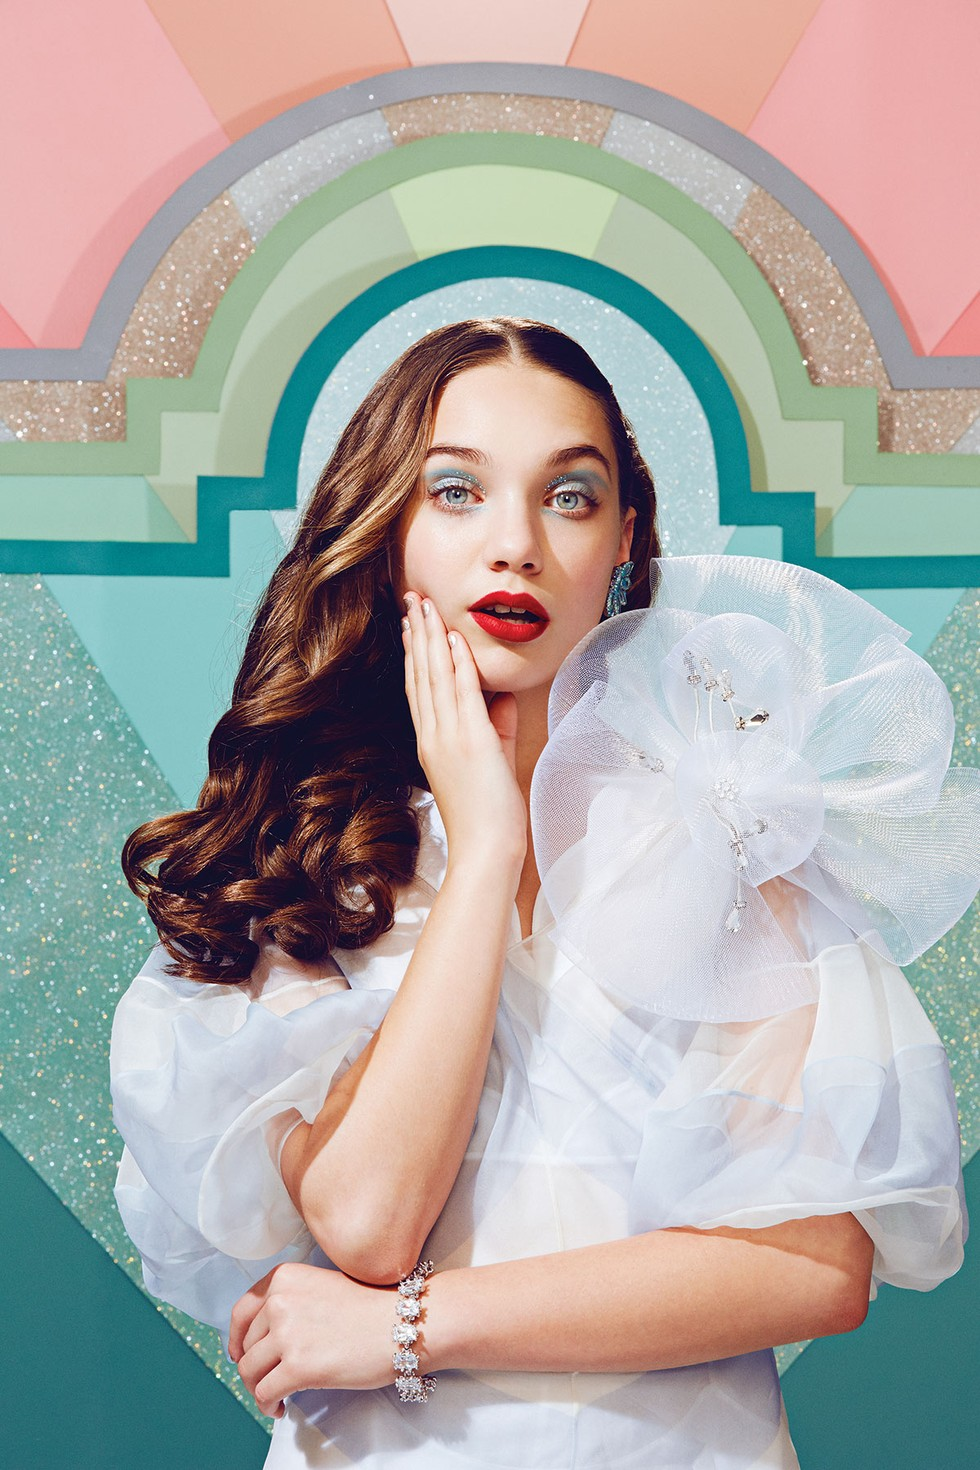 Maddie Ziegler's Sparkly Beauty Shoot - PAPER